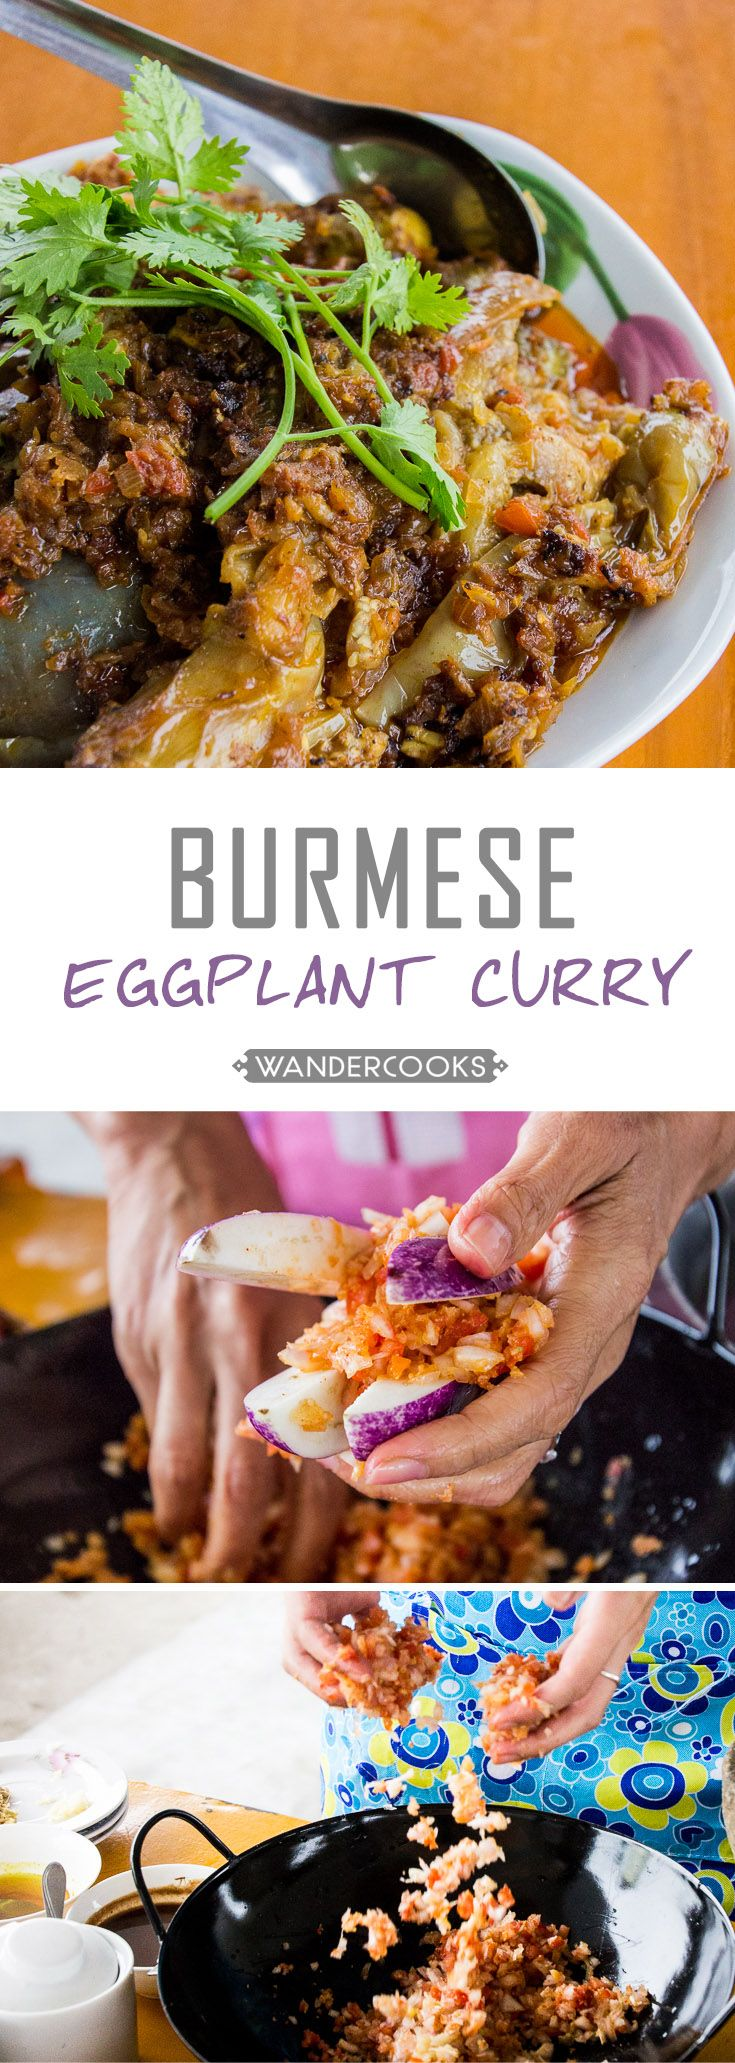 Burmese Eggplant Curry - This brown dish is sure to become a new family favourite. Vegetarian. | wandercooks.com